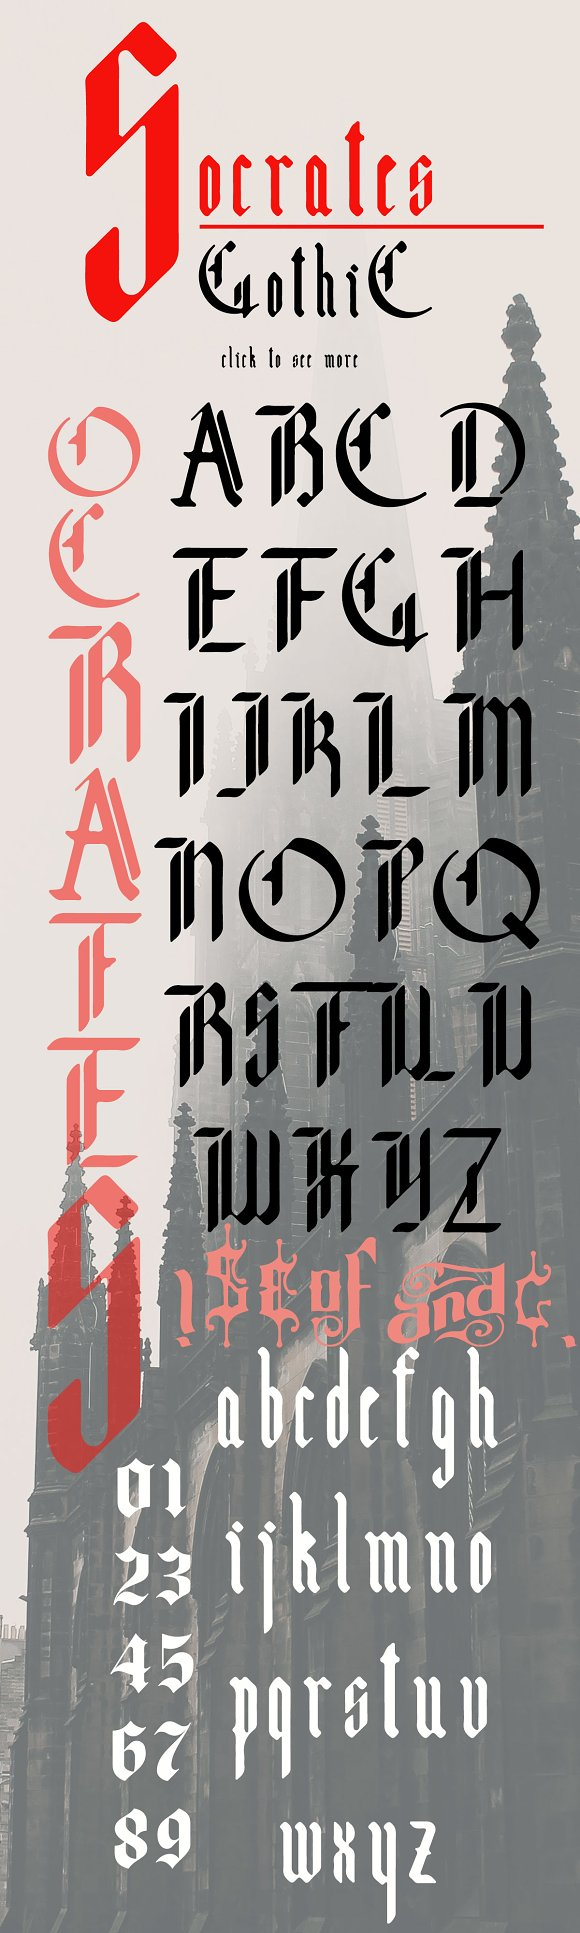 Socrates, modern gothic font